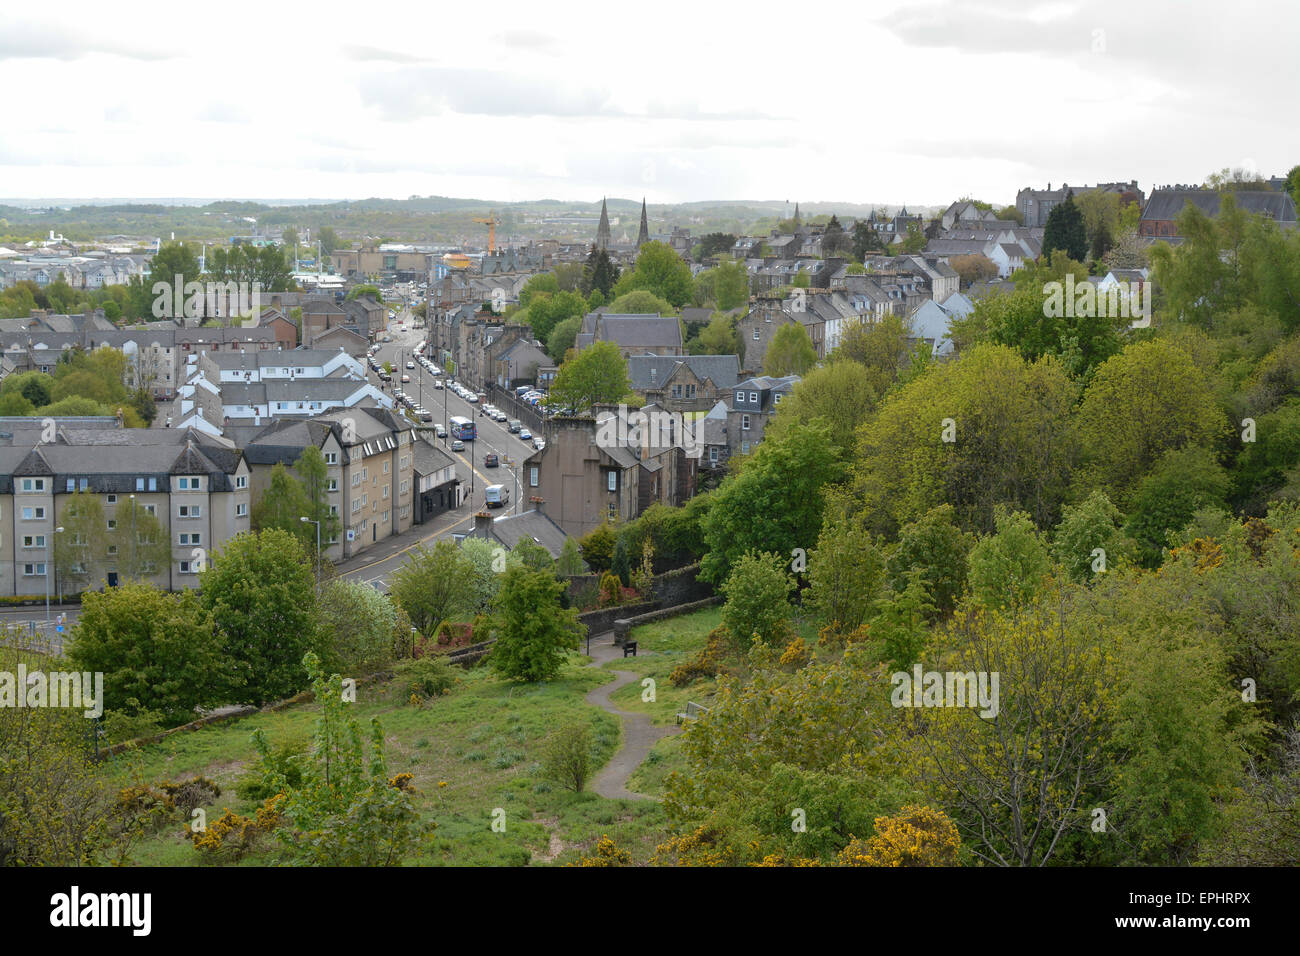 Stirling cityscape looking south from Gowan Hill - Stock Image